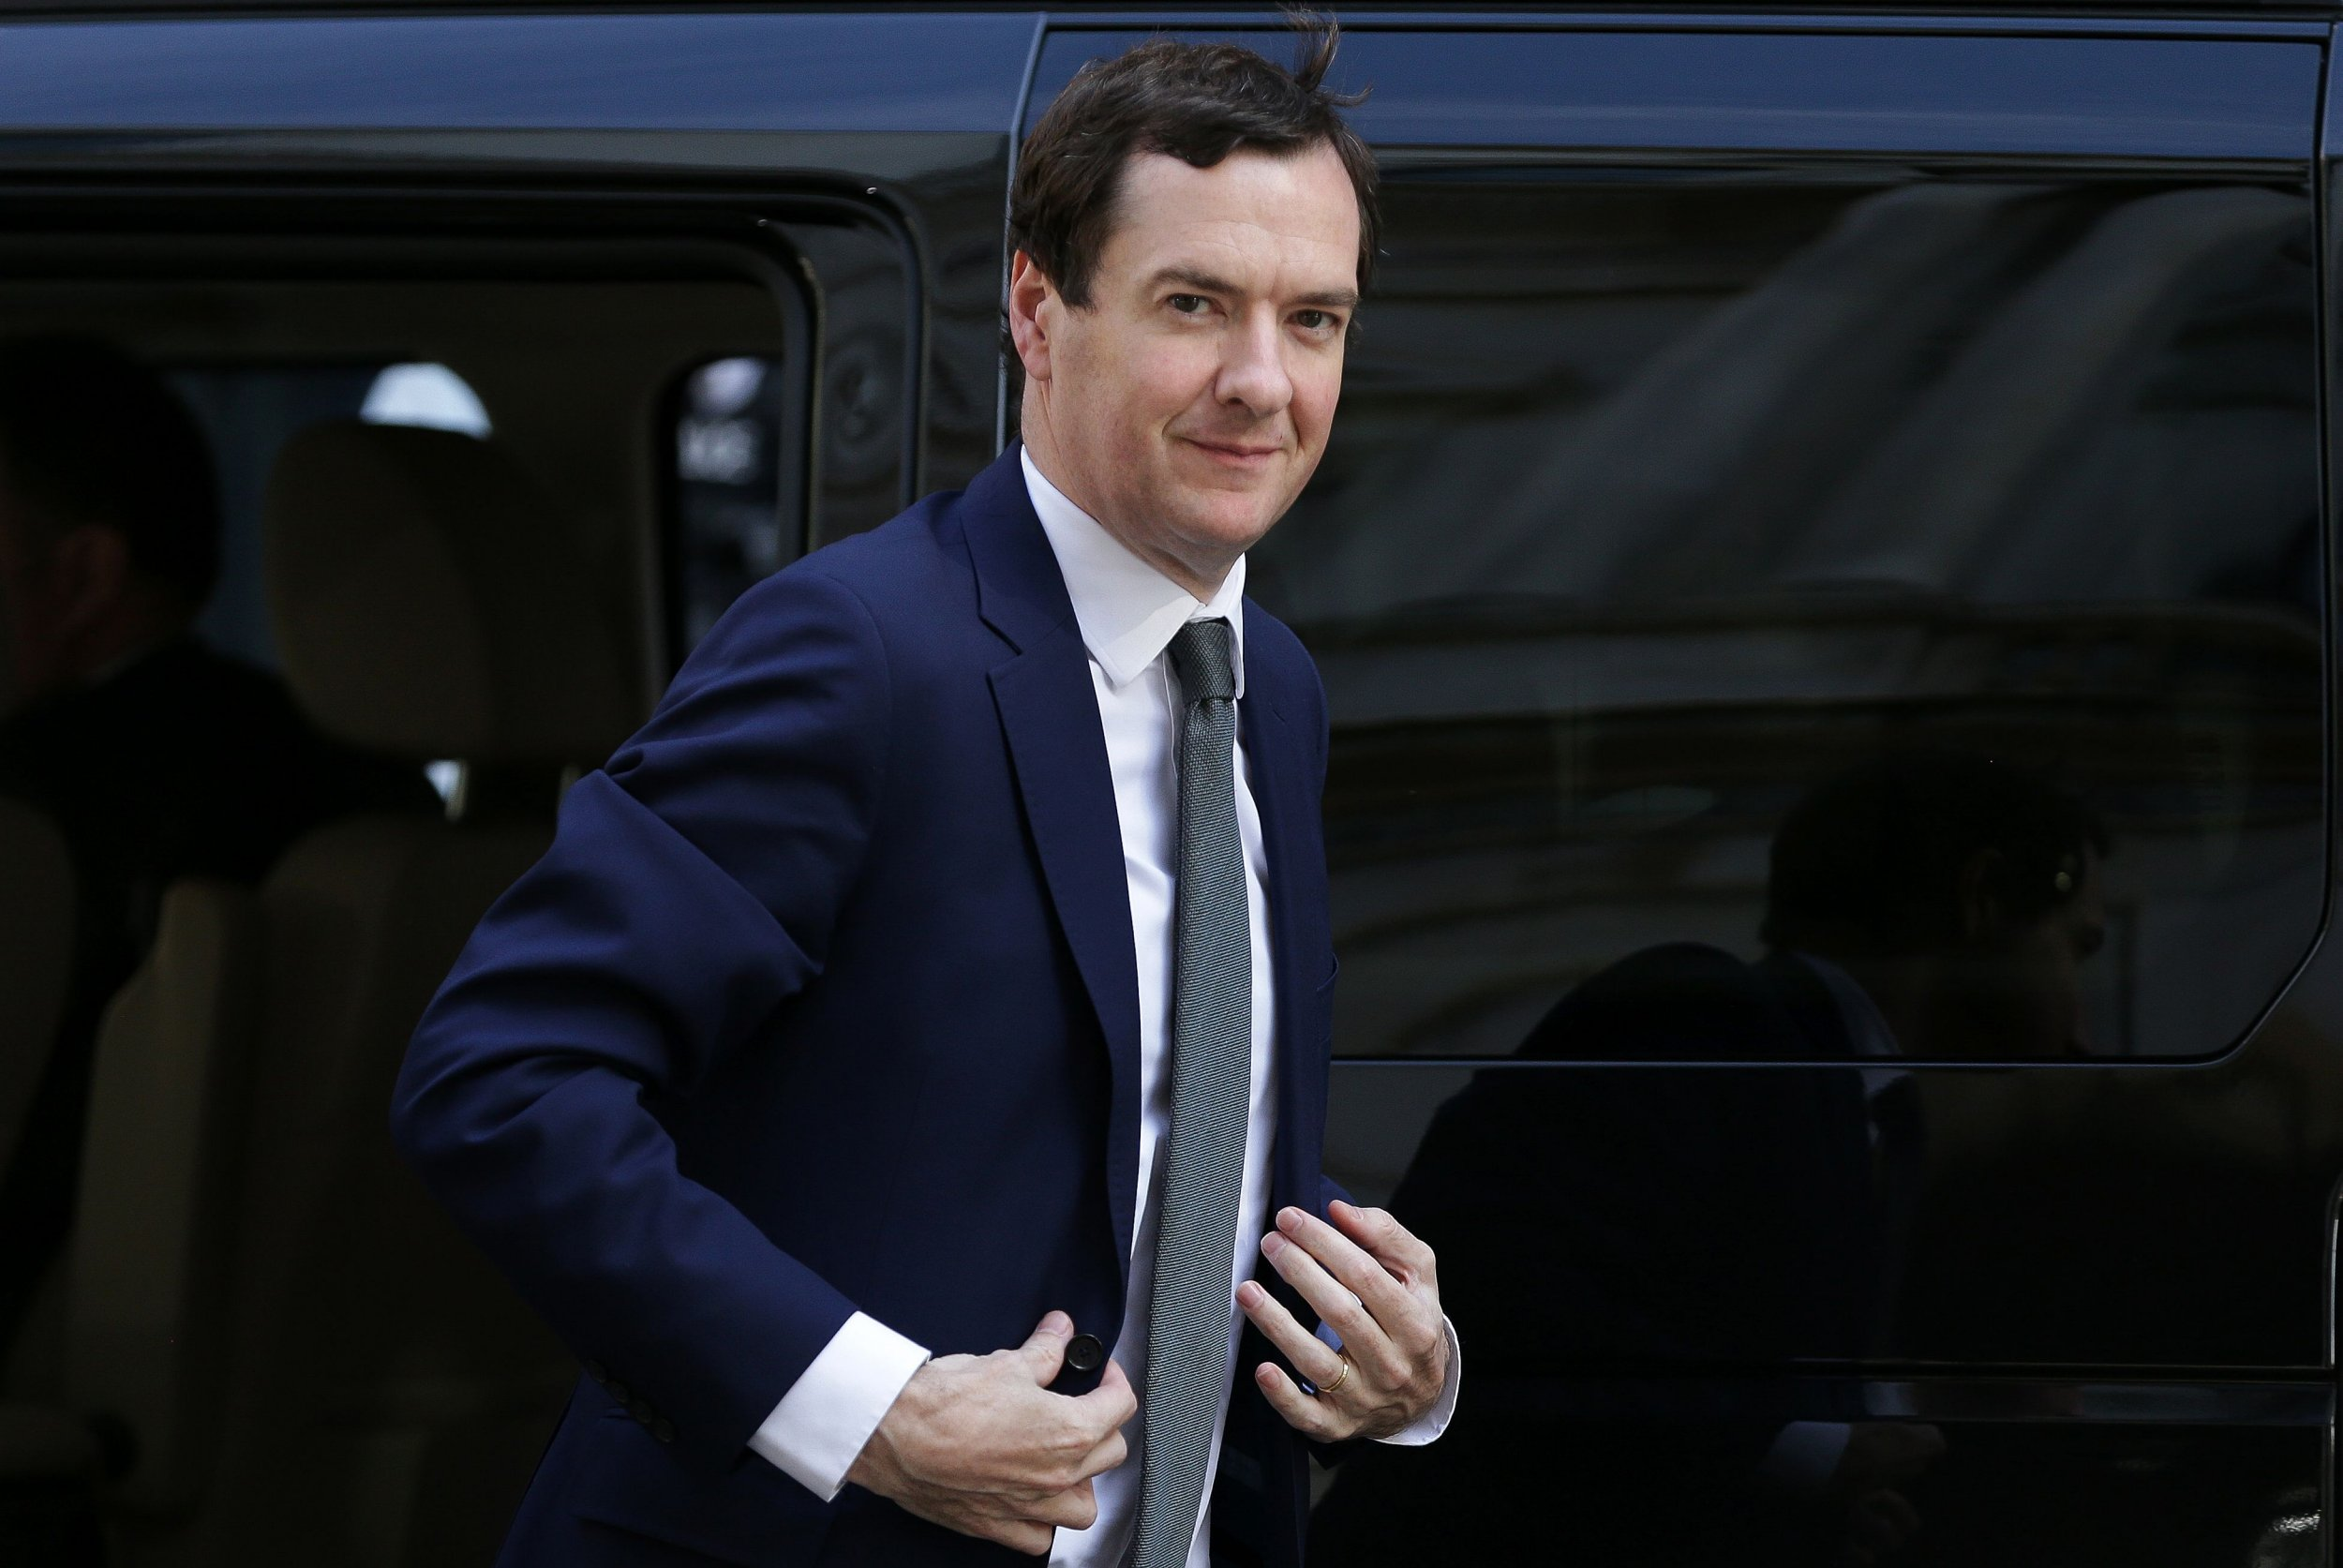 TAX RISES AND SPENDING CUTS WILL BE NEEDED TO DEAL WITH BREXIT, SAYS OSBORNE AFP/Getty Images